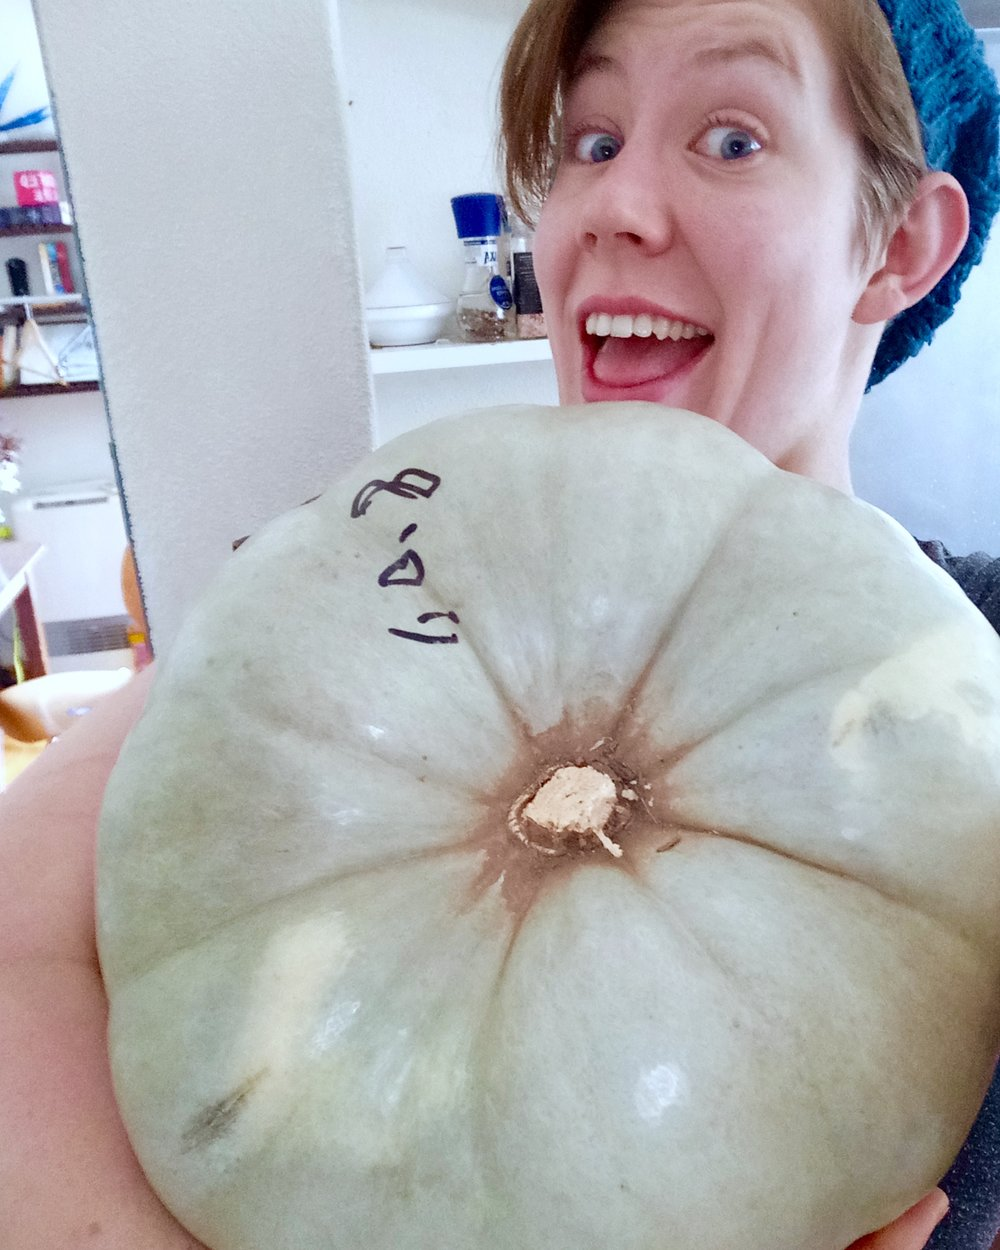 This should give you an idea of the size of our gargantuan pumpkin. My face for scale.